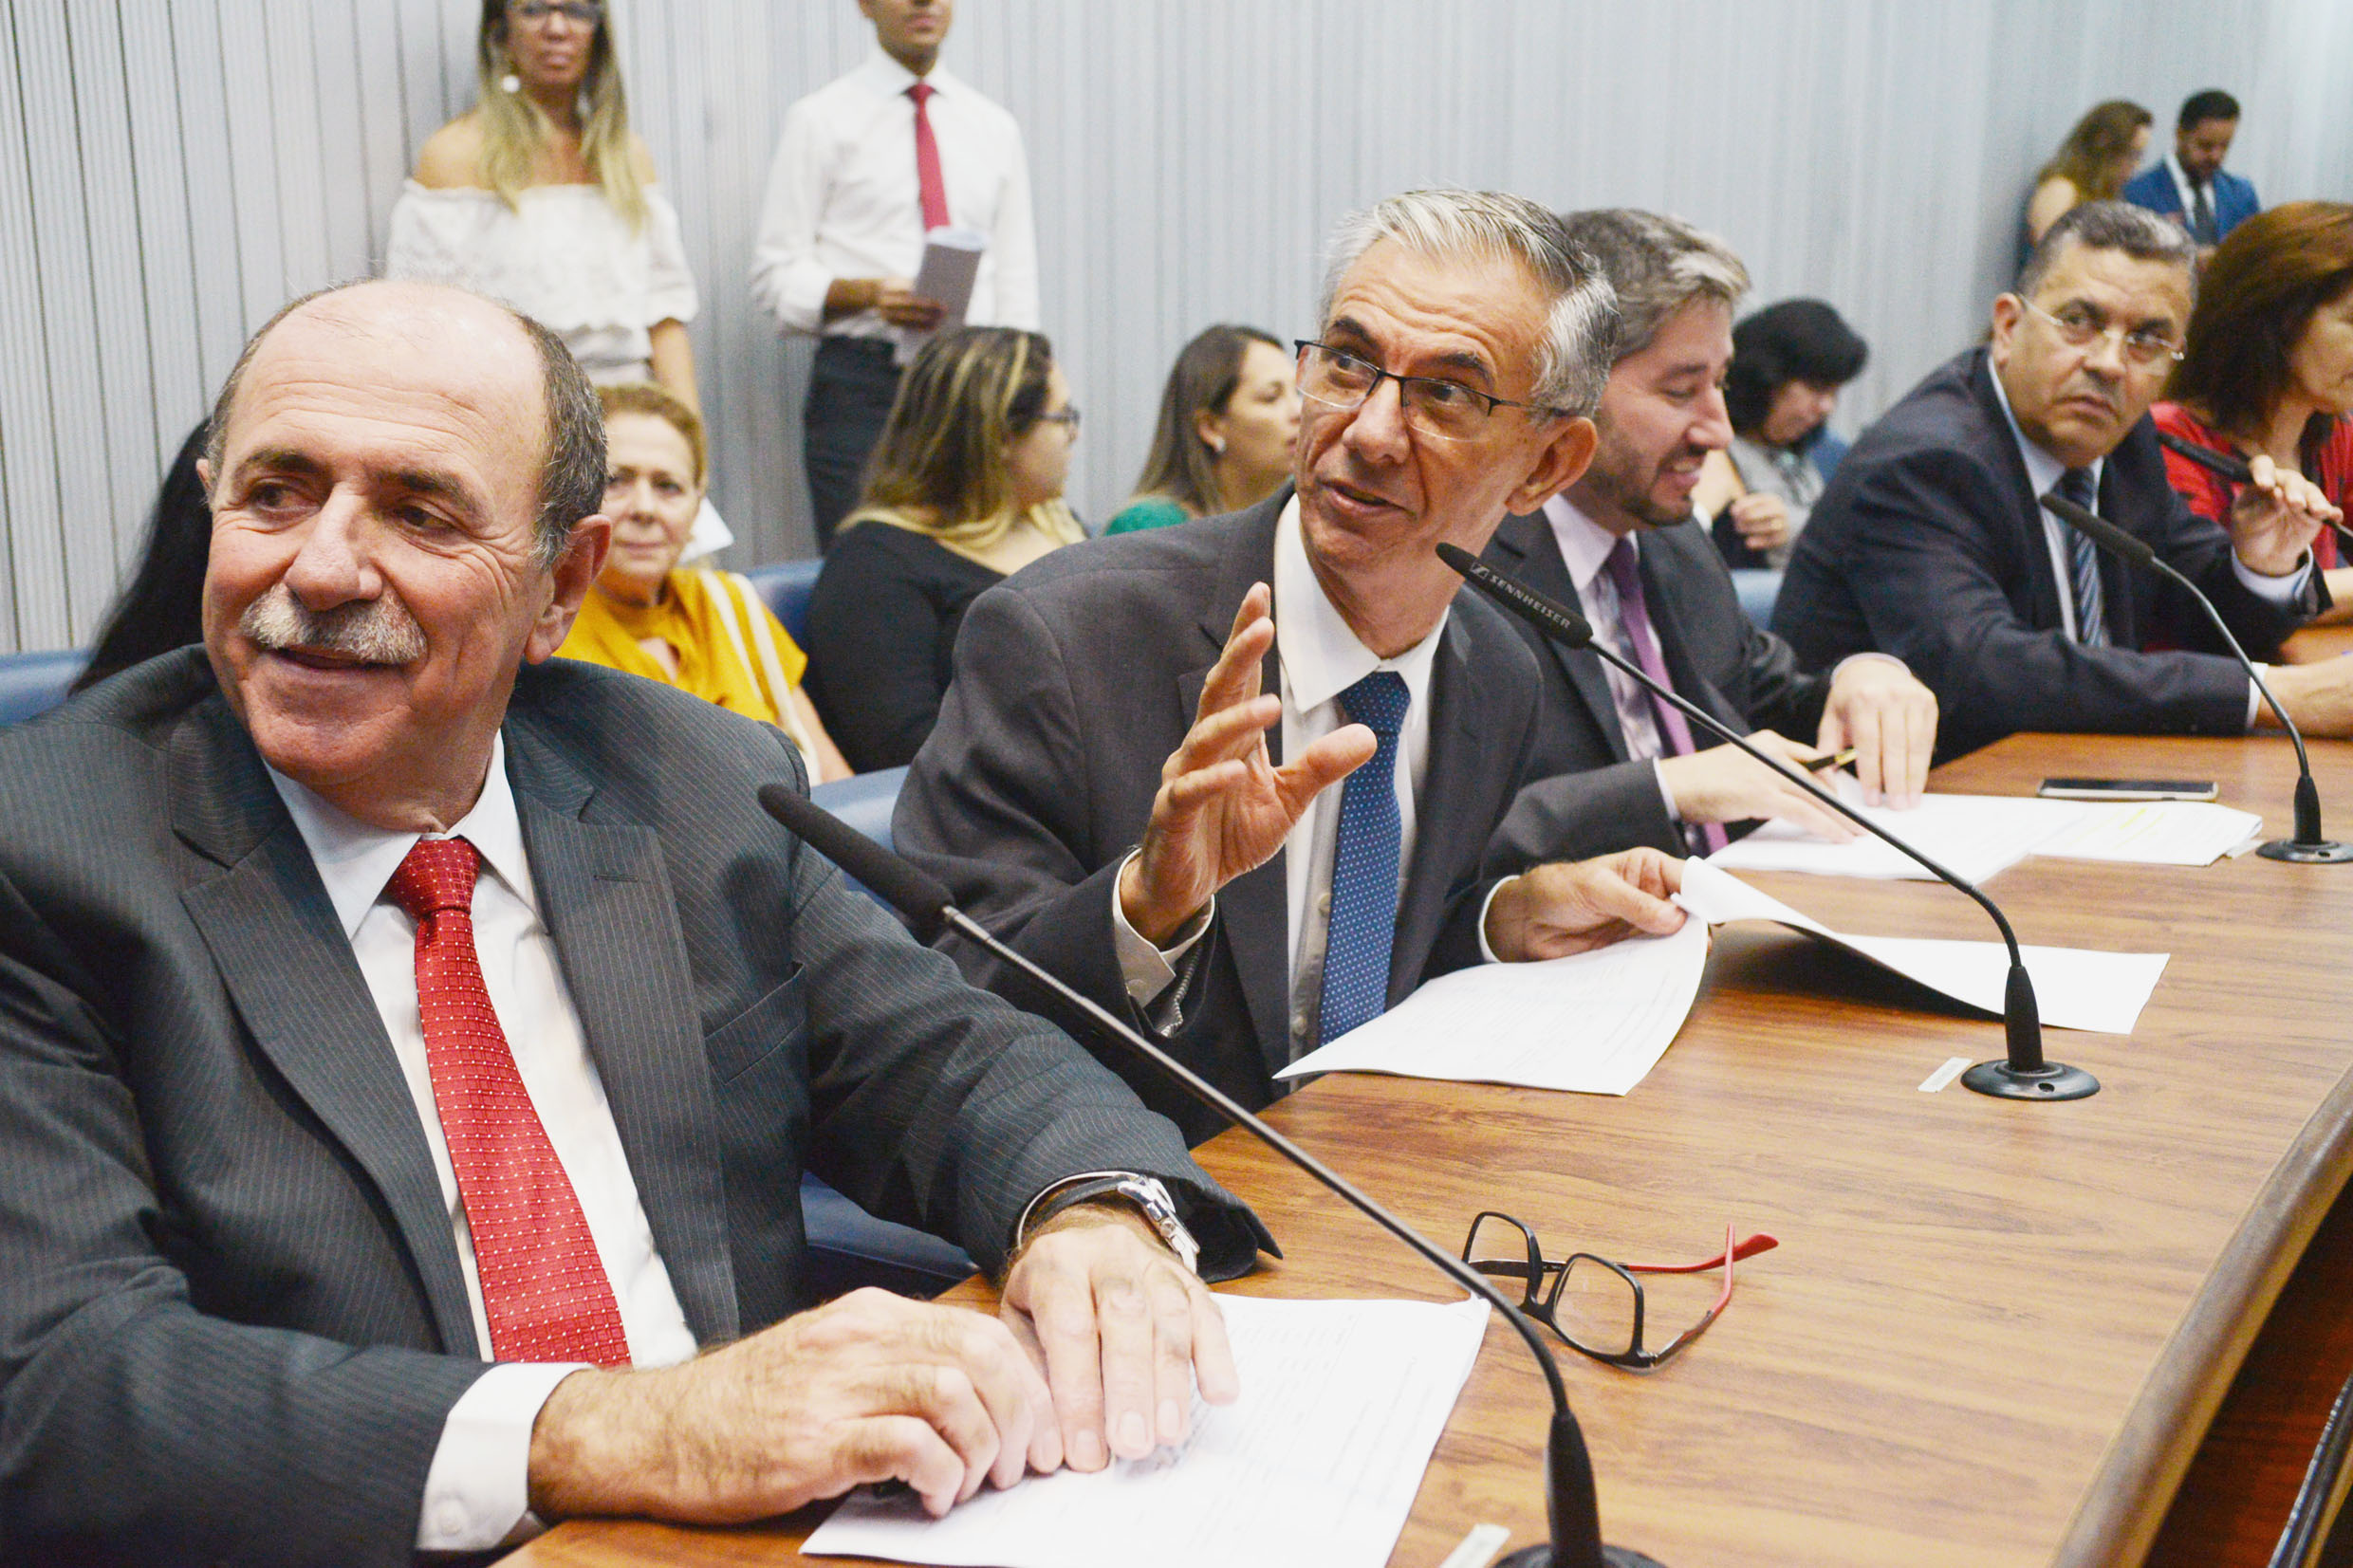 Parlamentares na comissão <a style='float:right' href='https://www3.al.sp.gov.br/repositorio/noticia/N-03-2019/fg231083.jpg' target=_blank><img src='/_img/material-file-download-white.png' width='14px' alt='Clique para baixar a imagem'></a>